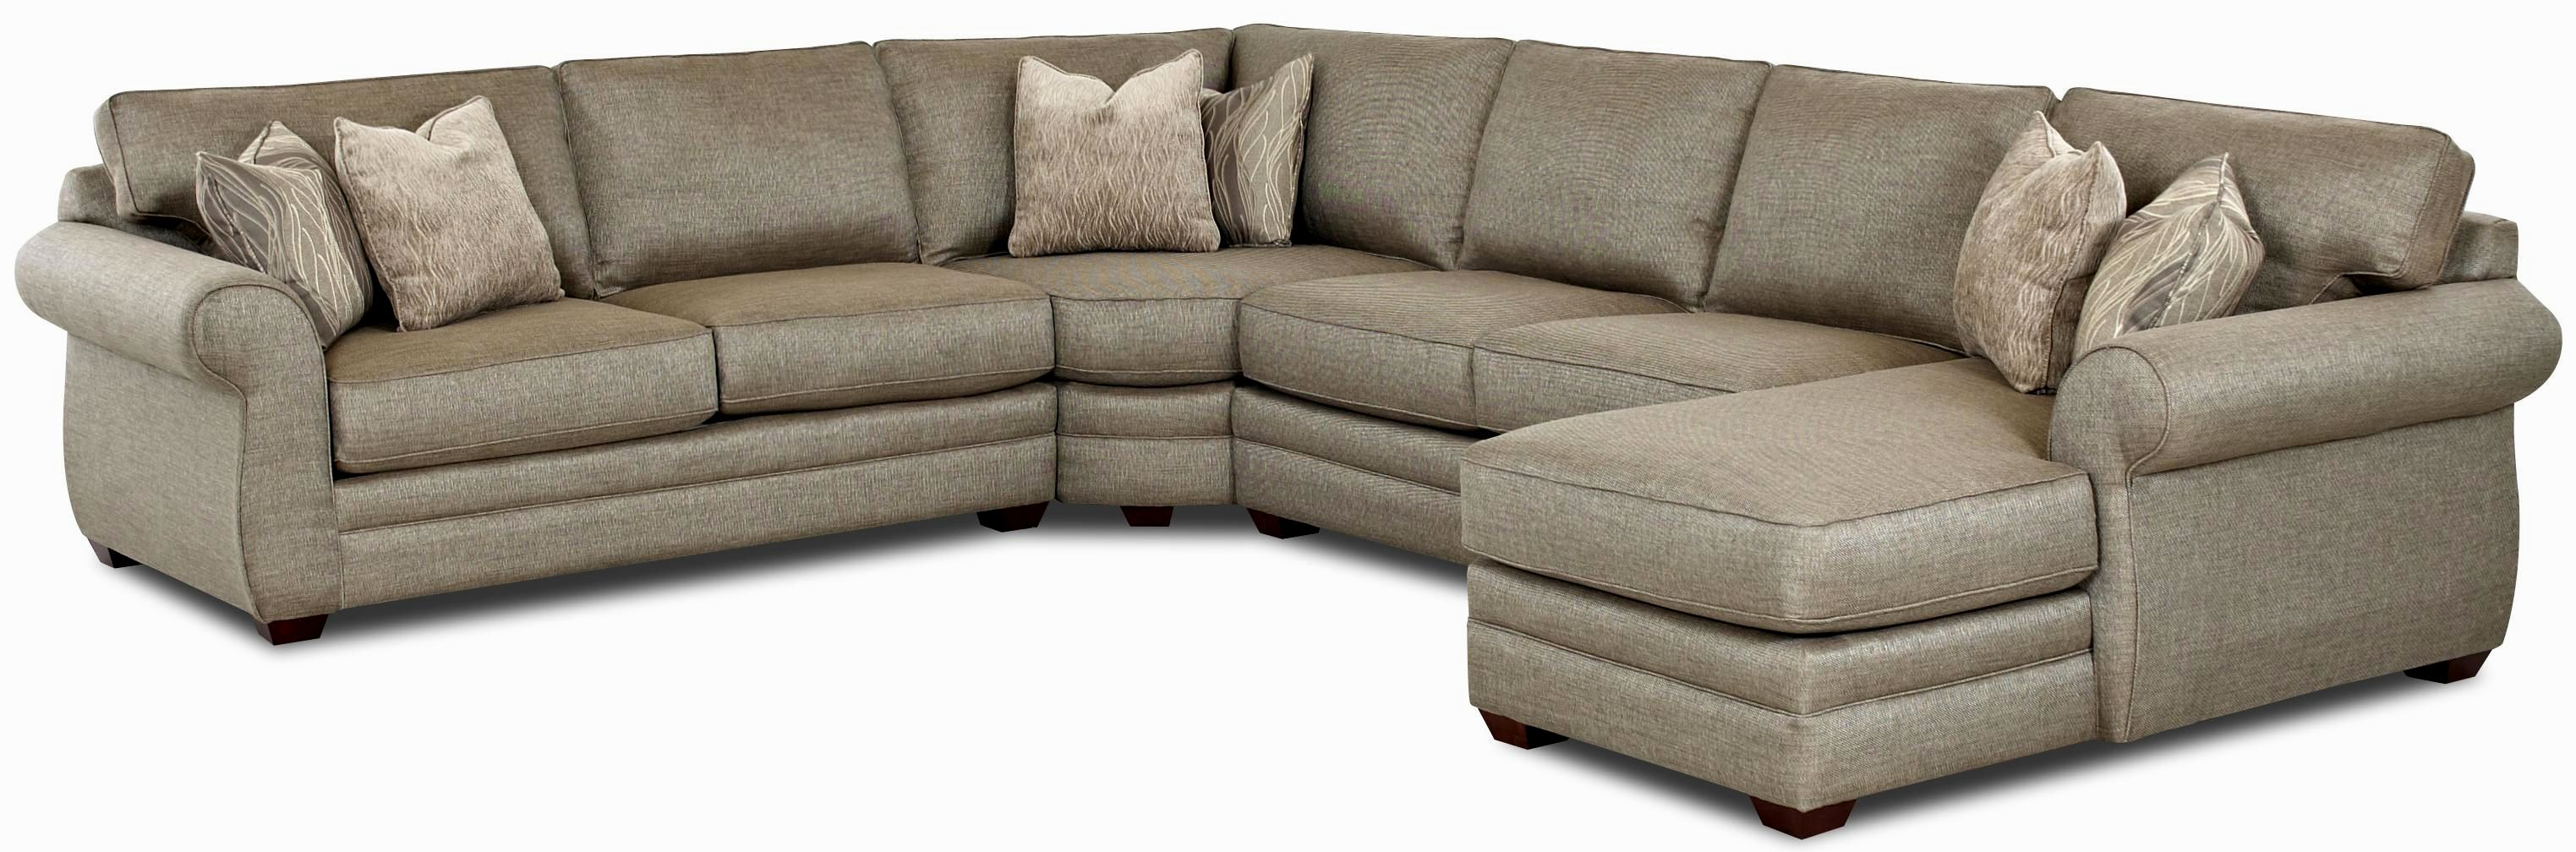 contemporary sectional sofa with recliner collection-Excellent Sectional sofa with Recliner Picture